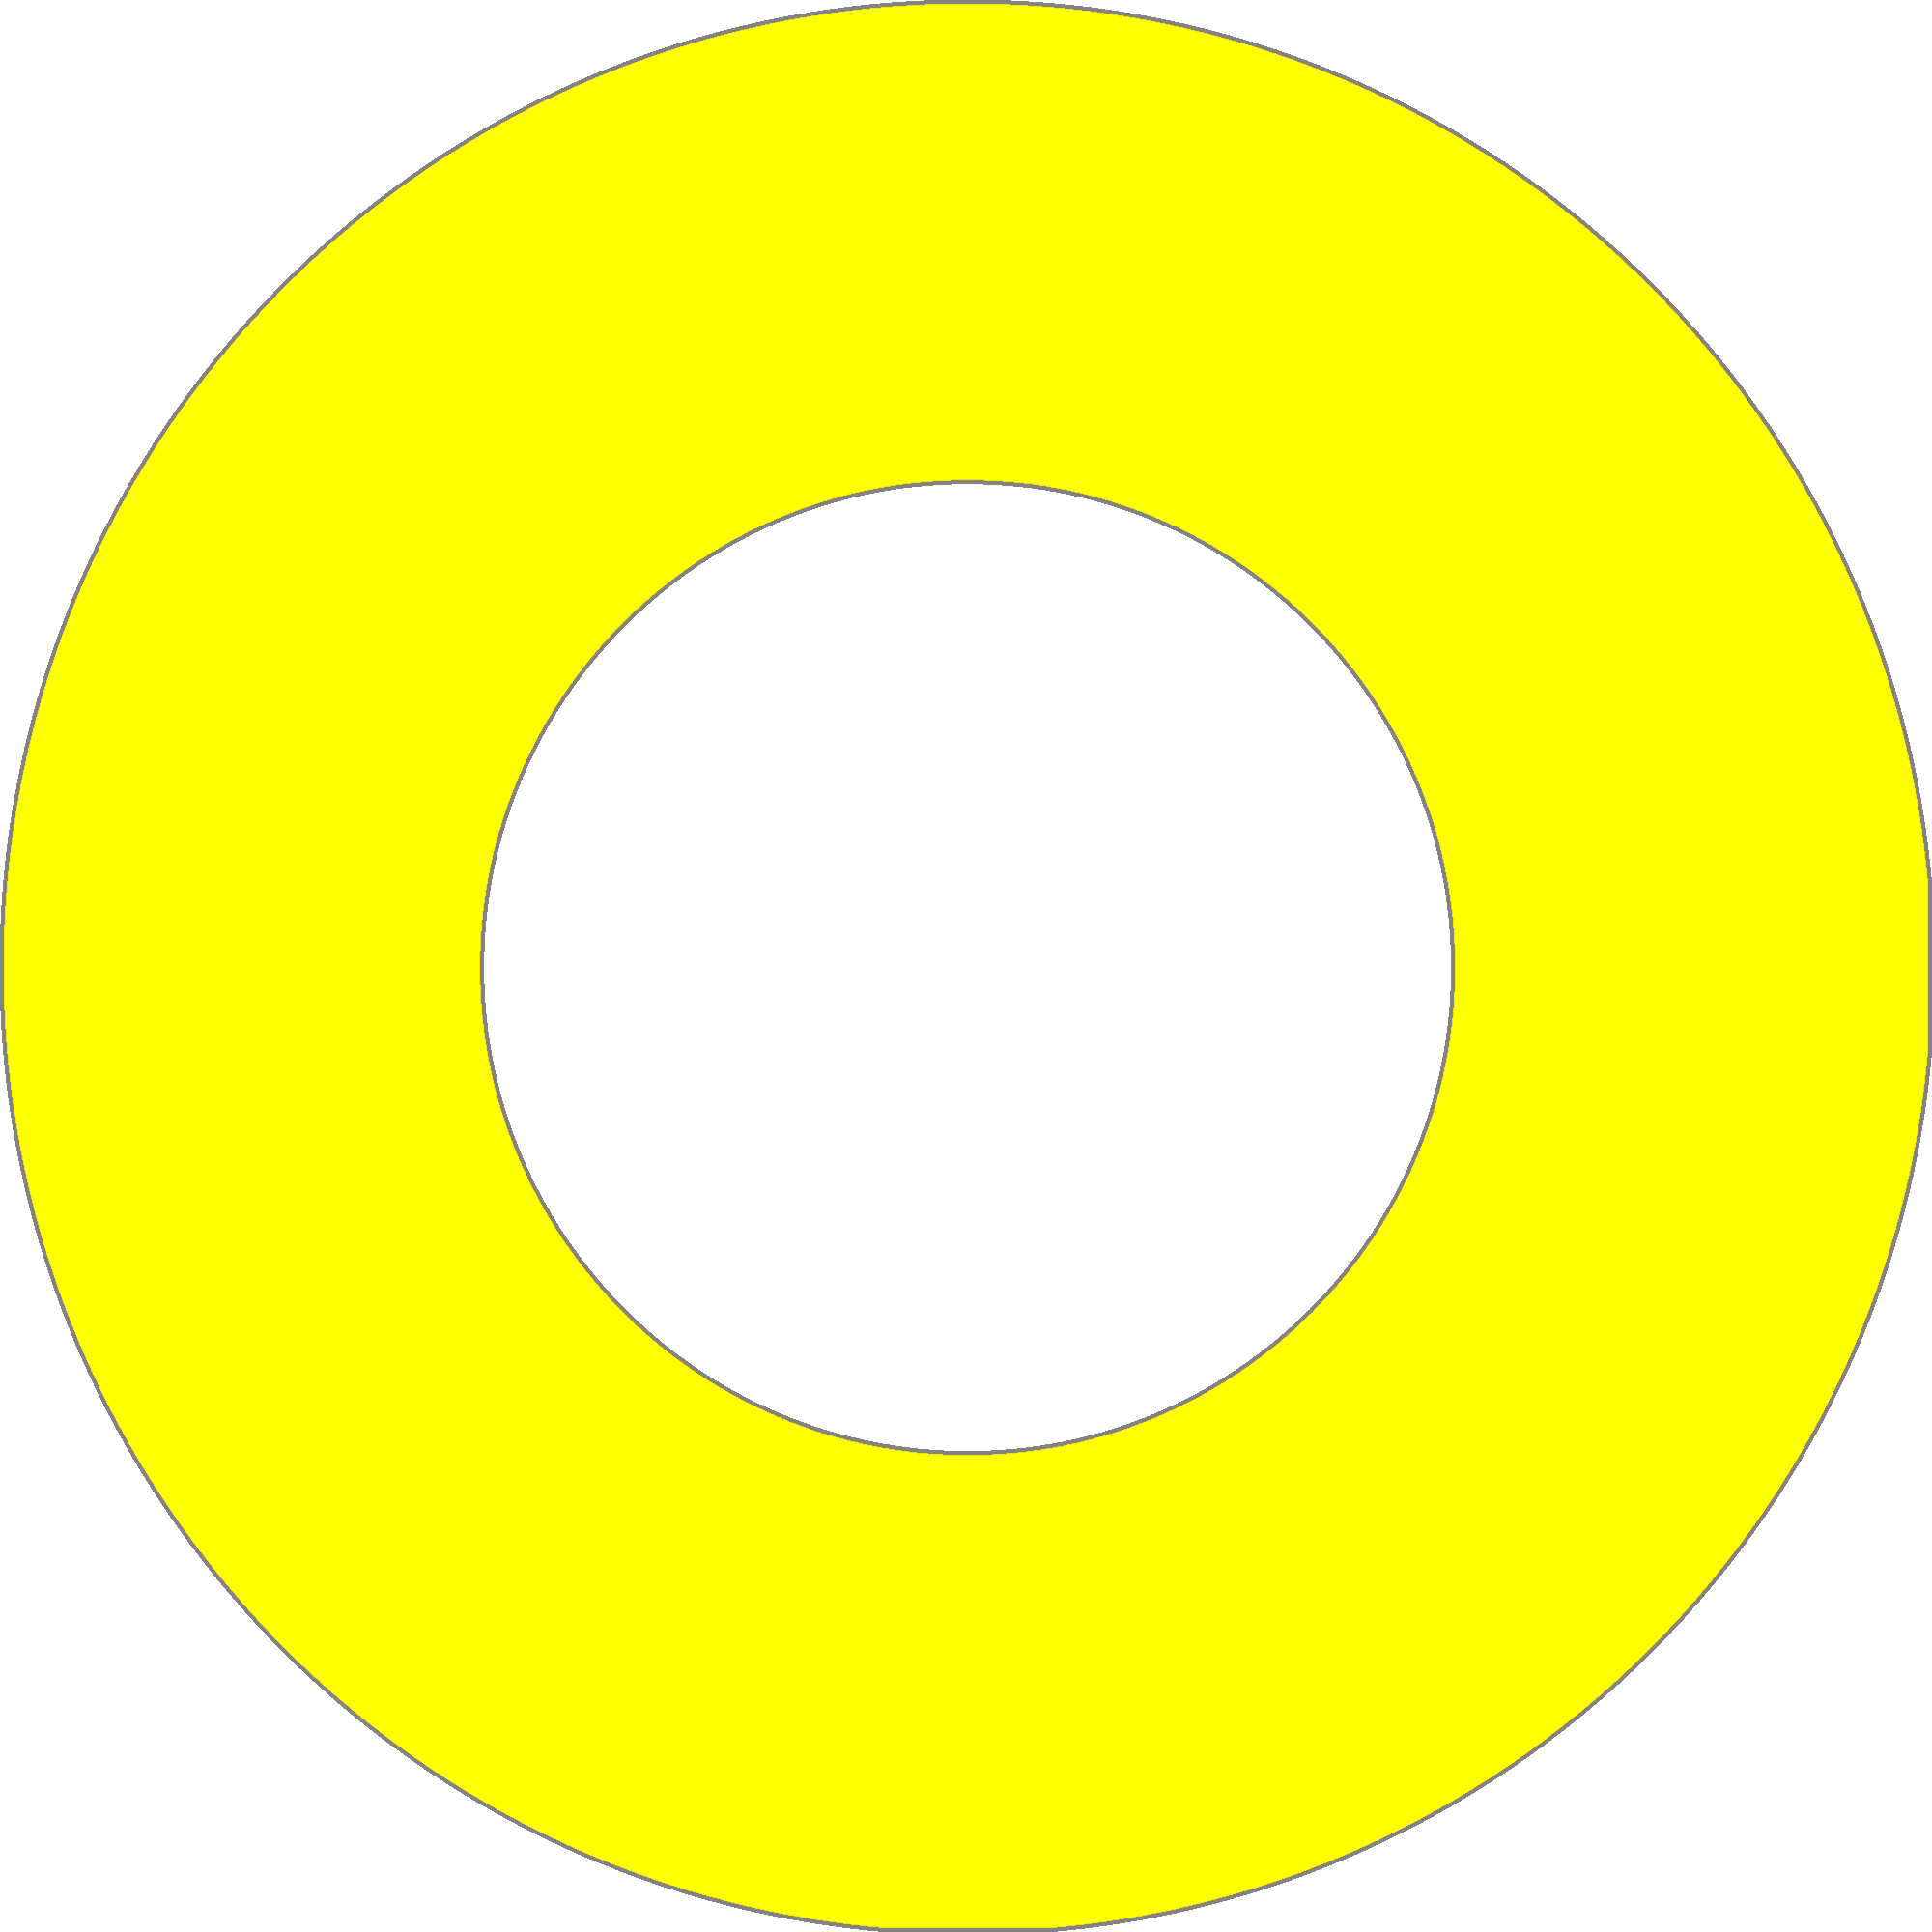 blue yellow white circle - photo #16